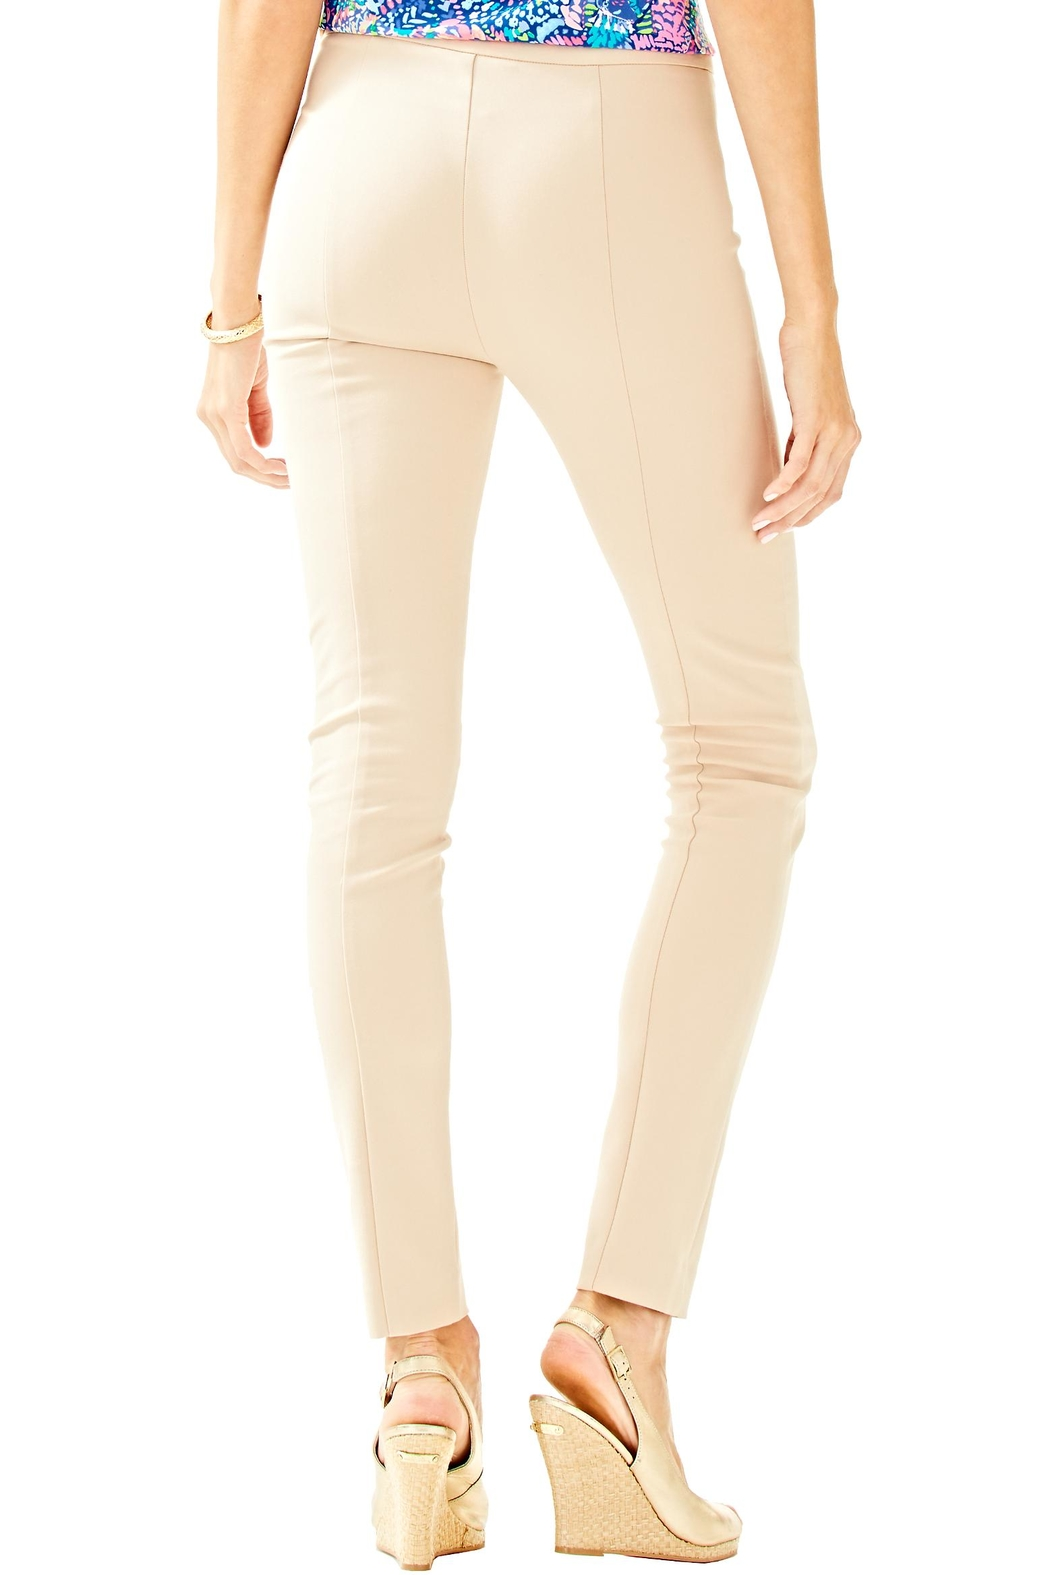 Lilly Pulitzer Alessia Stretch Pant - Front Full Image